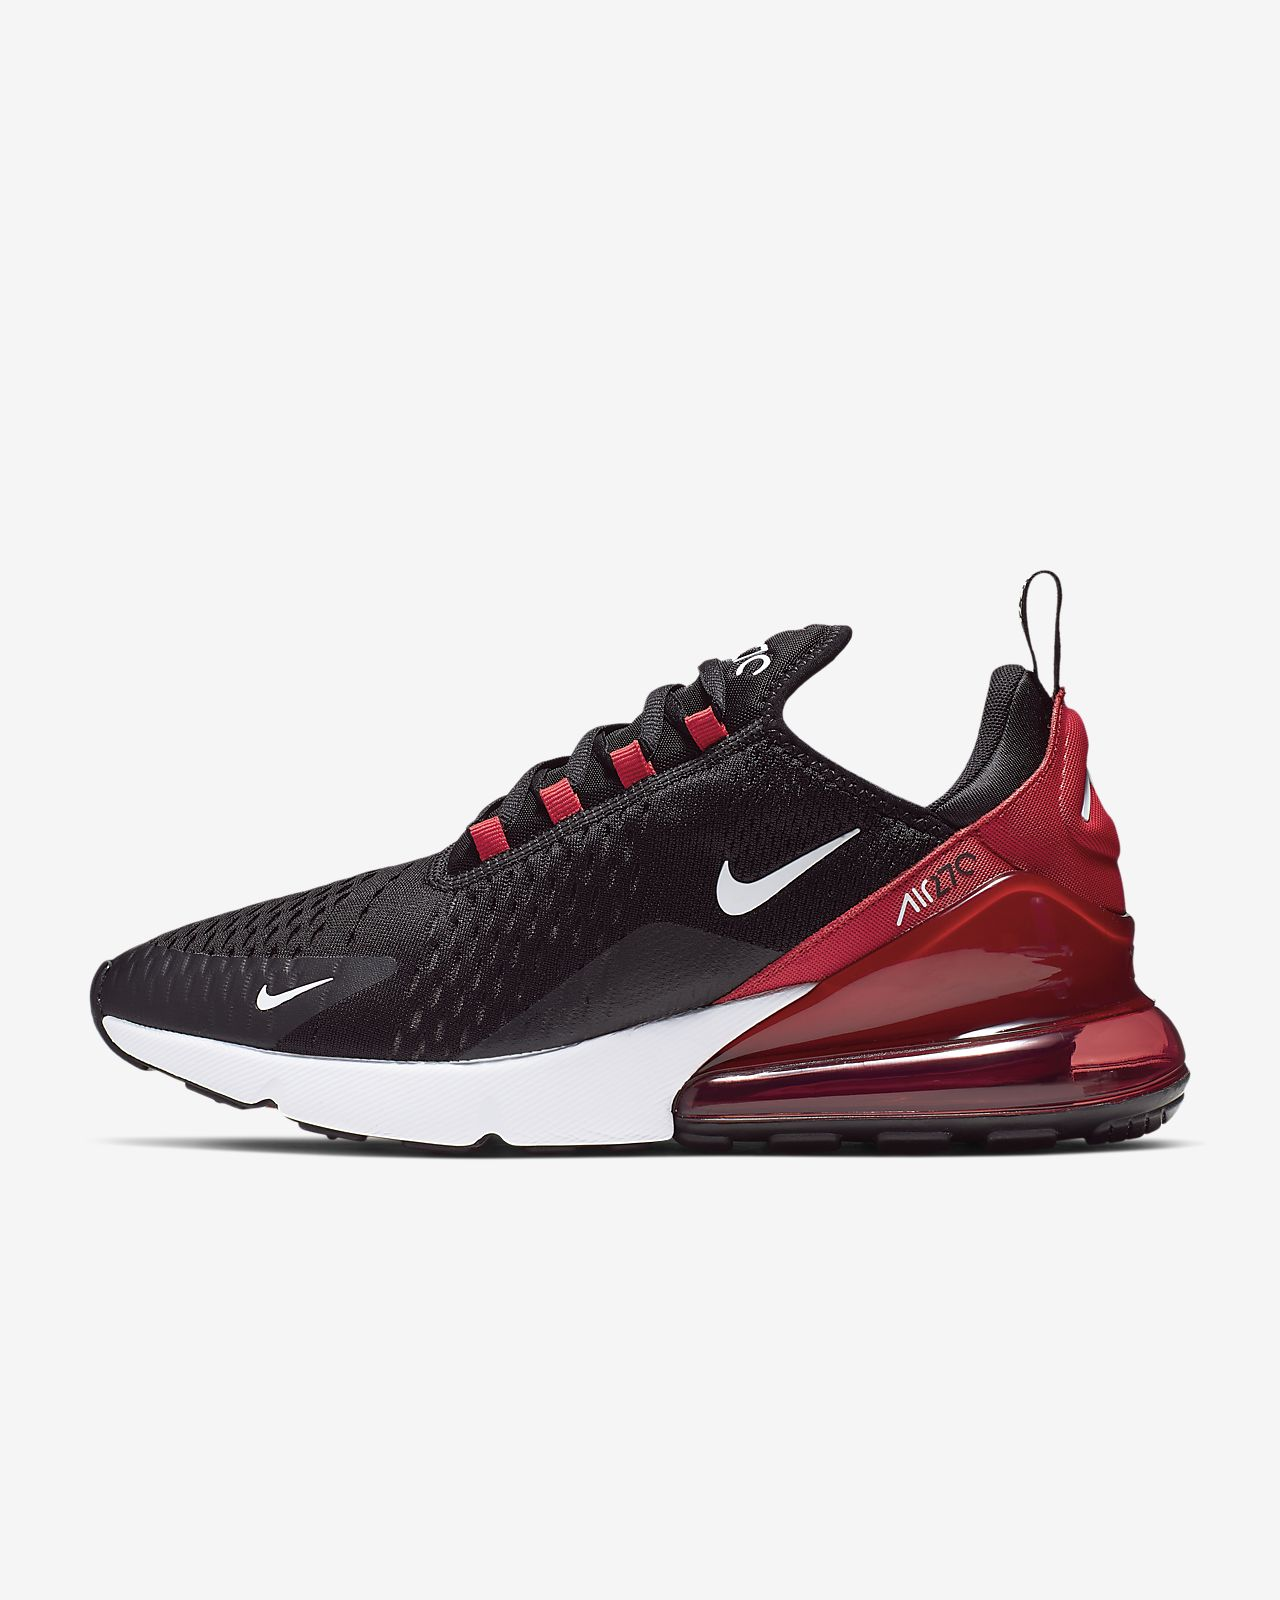 huge selection of 7c0ae 78899 ... Sko Nike Air Max 270 för män